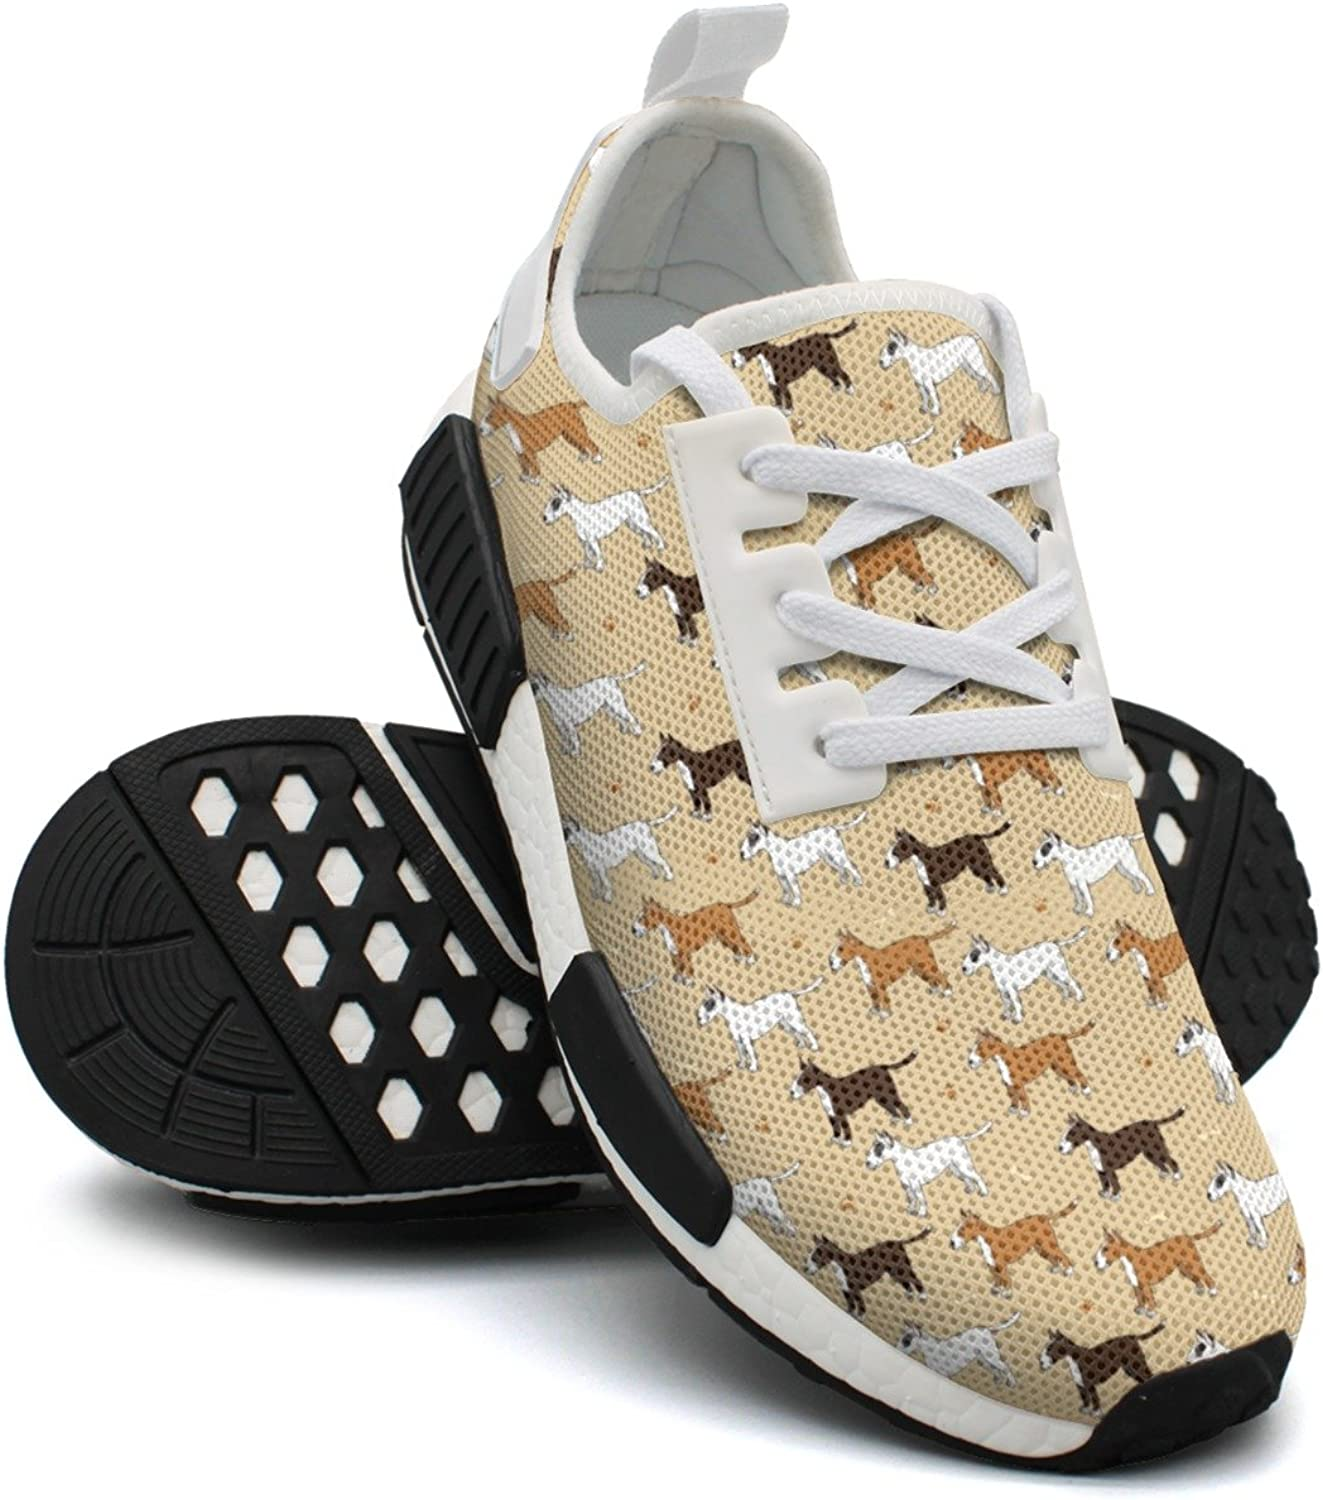 Playing Dog Funny Purebred Puppy Women's Trendy Lightweight Sneakers shoes Gym Outdoor Running shoes